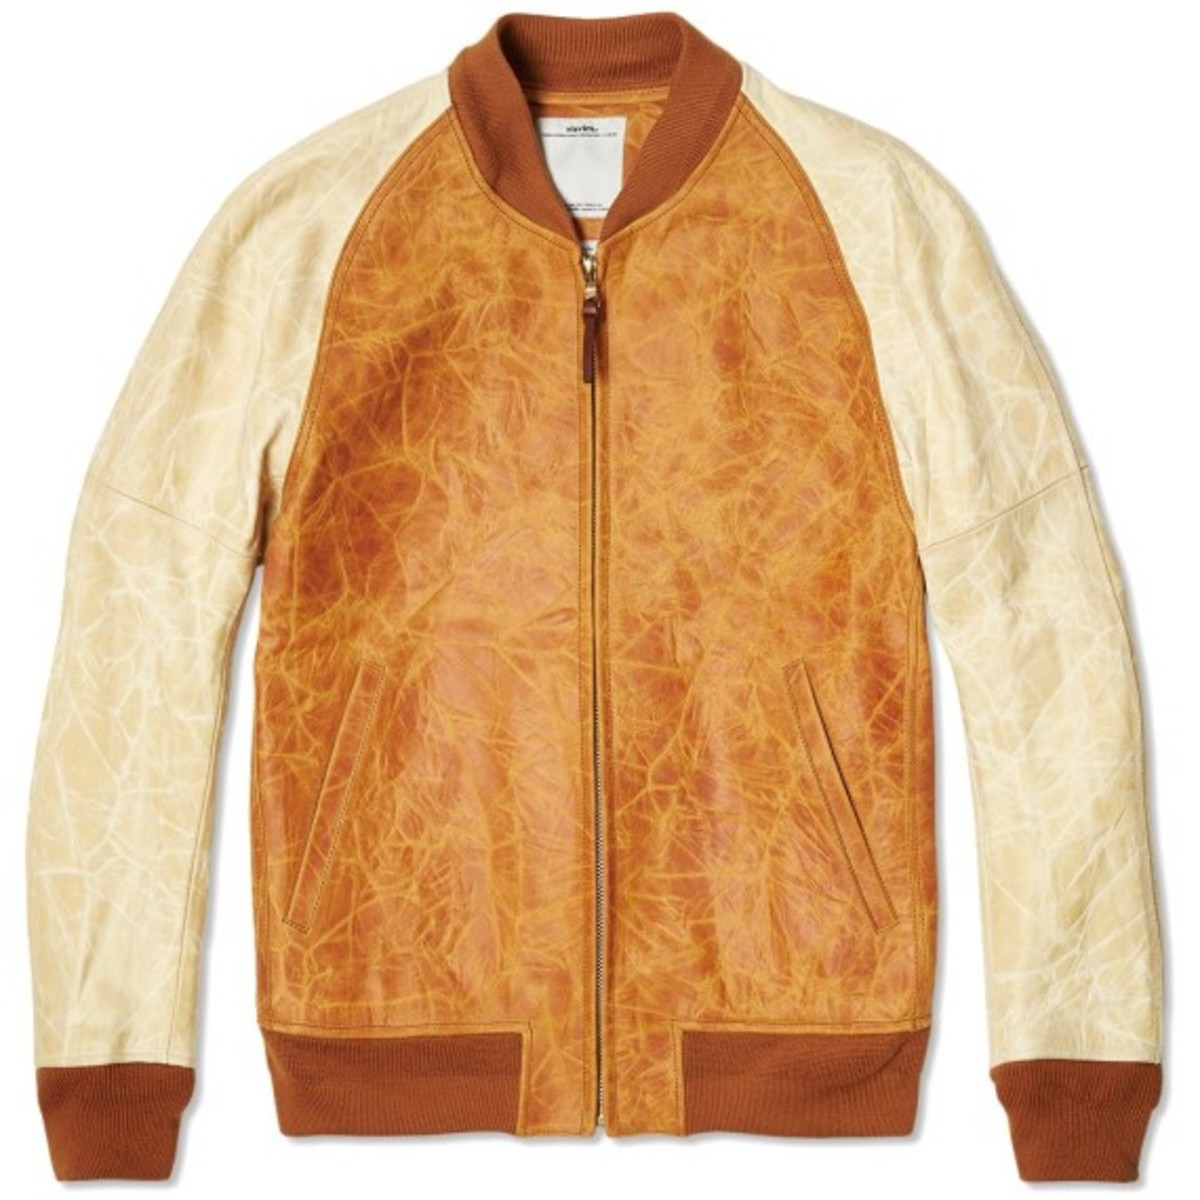 visvim-varsity-jacket-light-brown-03